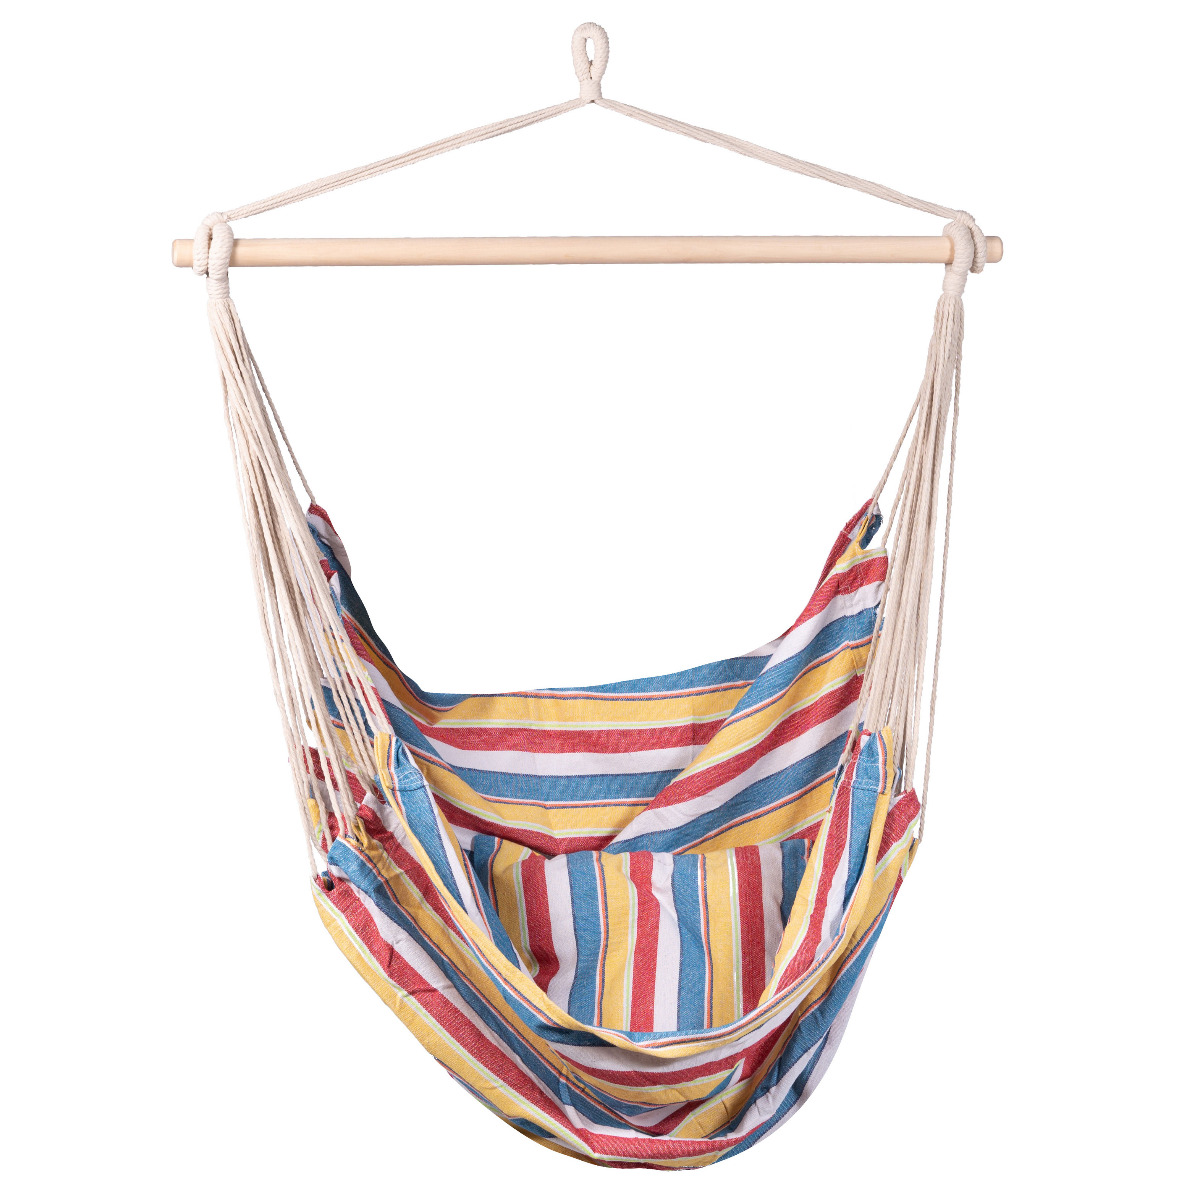 'Cabrera' Single Hangstoel - Veelkleurig - 123 Hammock